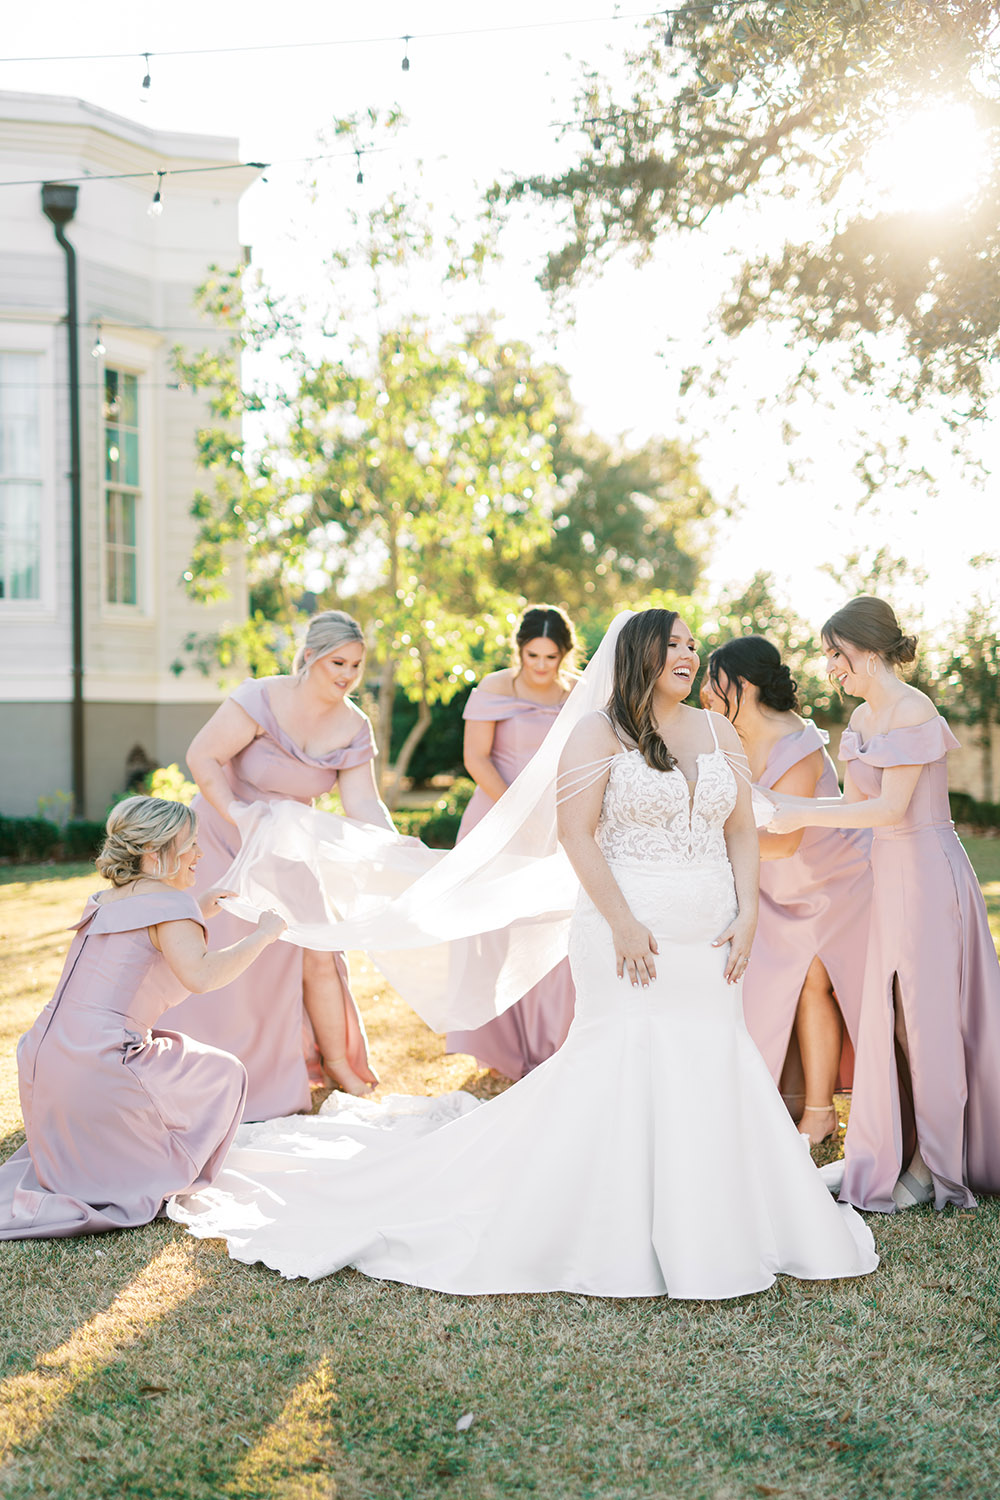 Bridesmaids fix the bride's veil by Peony Photography